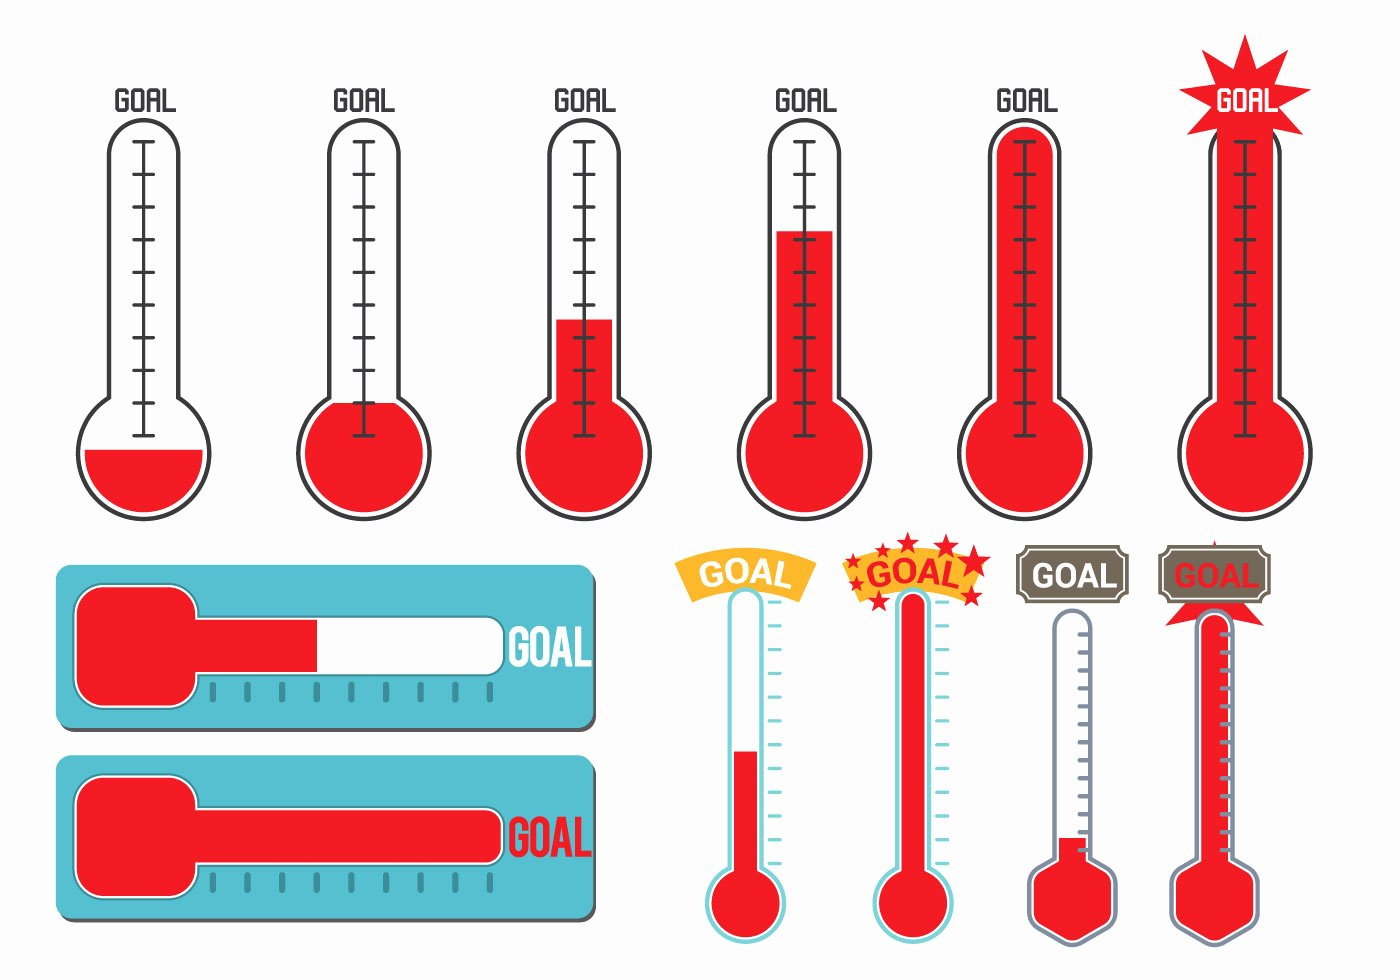 Fundraising thermometer Template Editable New Goal thermometer Vector Download Free Vector Art Stock